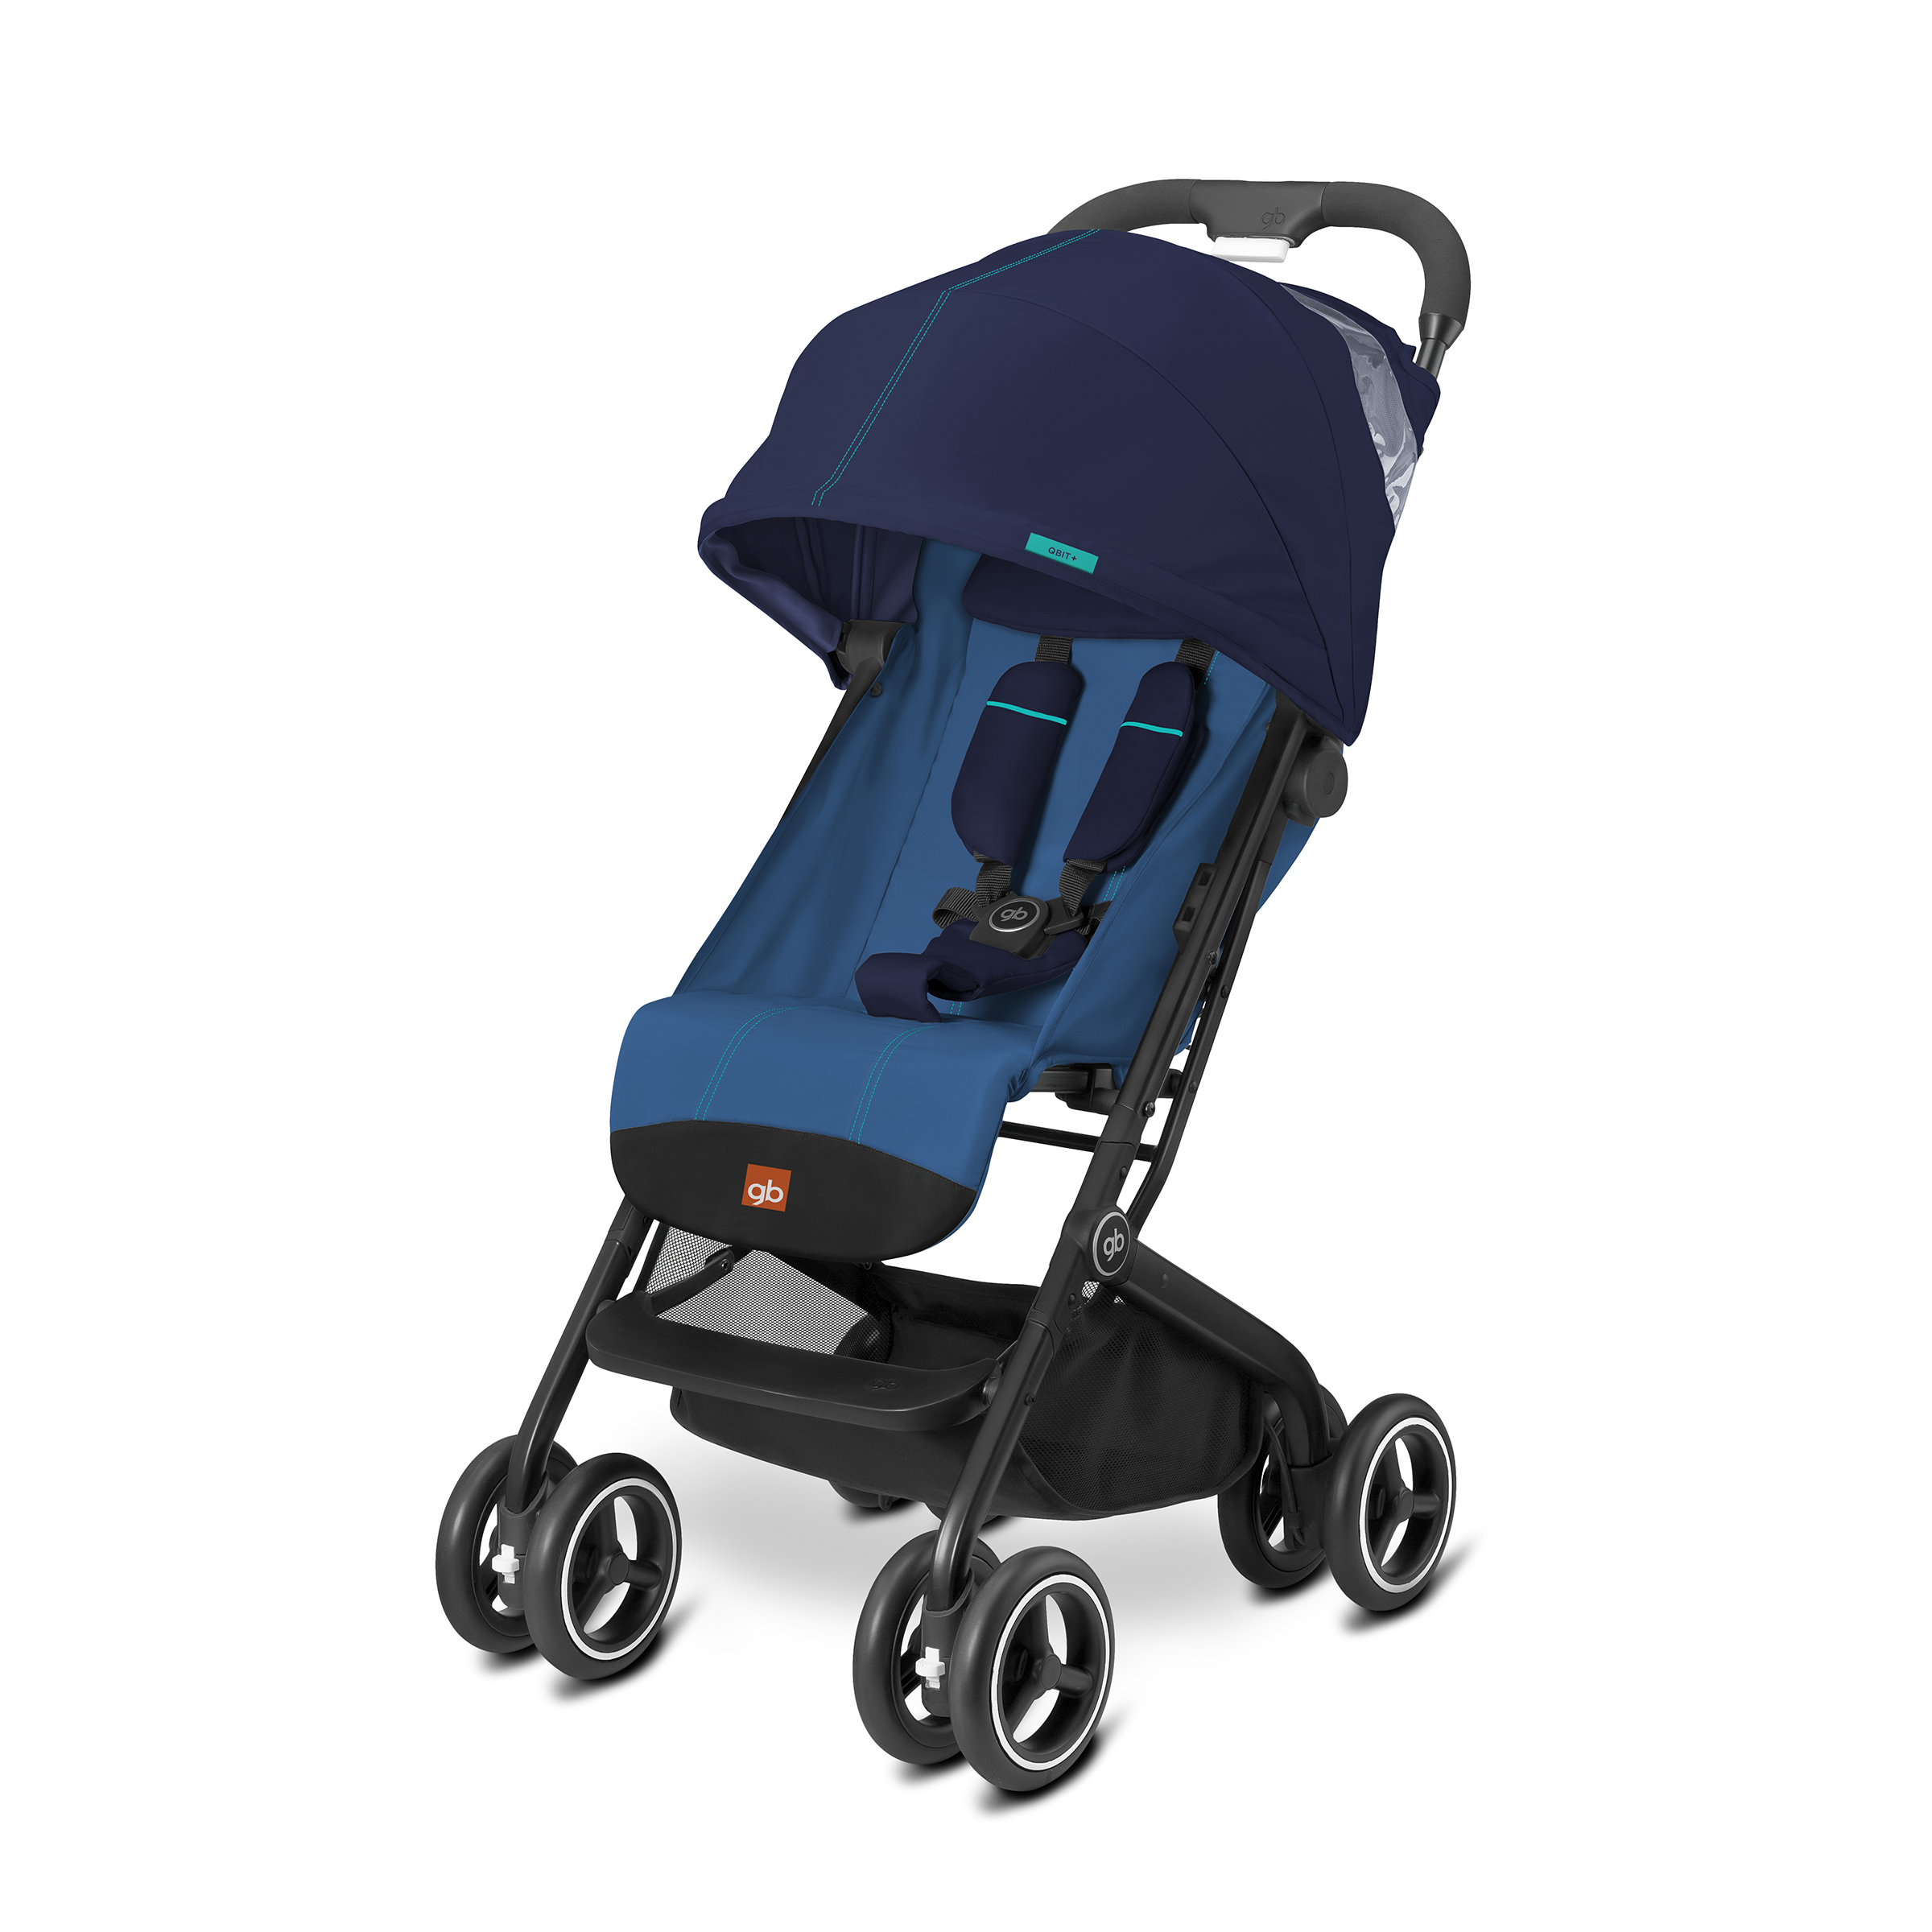 gb Qbit + Lightweight Stroller, Sea Port Blue